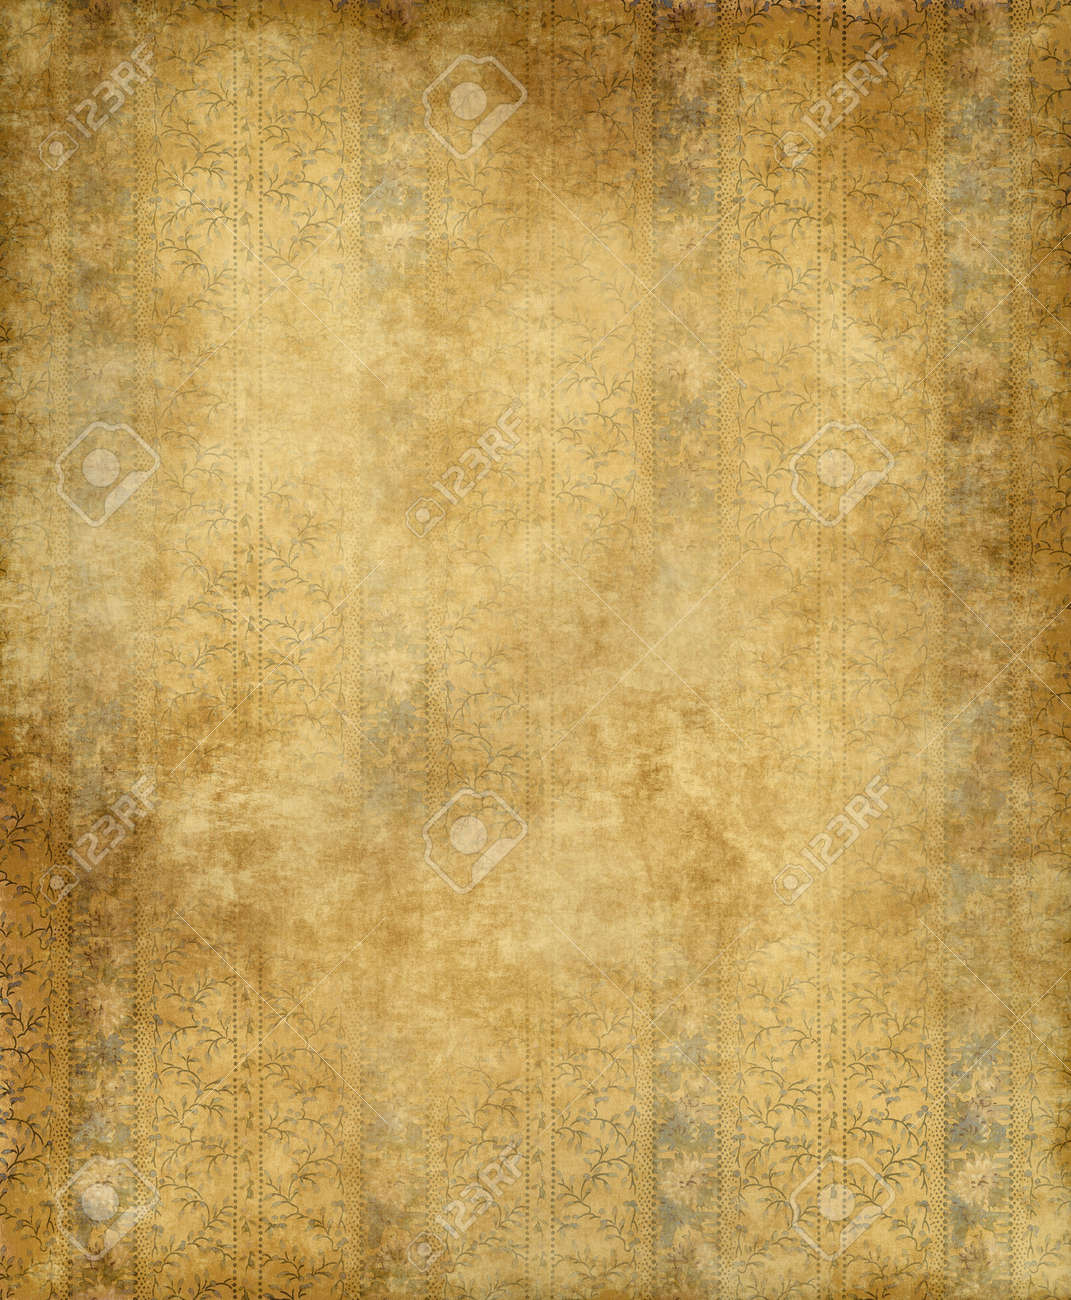 Brand-new Large Old Paper Or Parchment Background Texture Stock Photo  XZ02